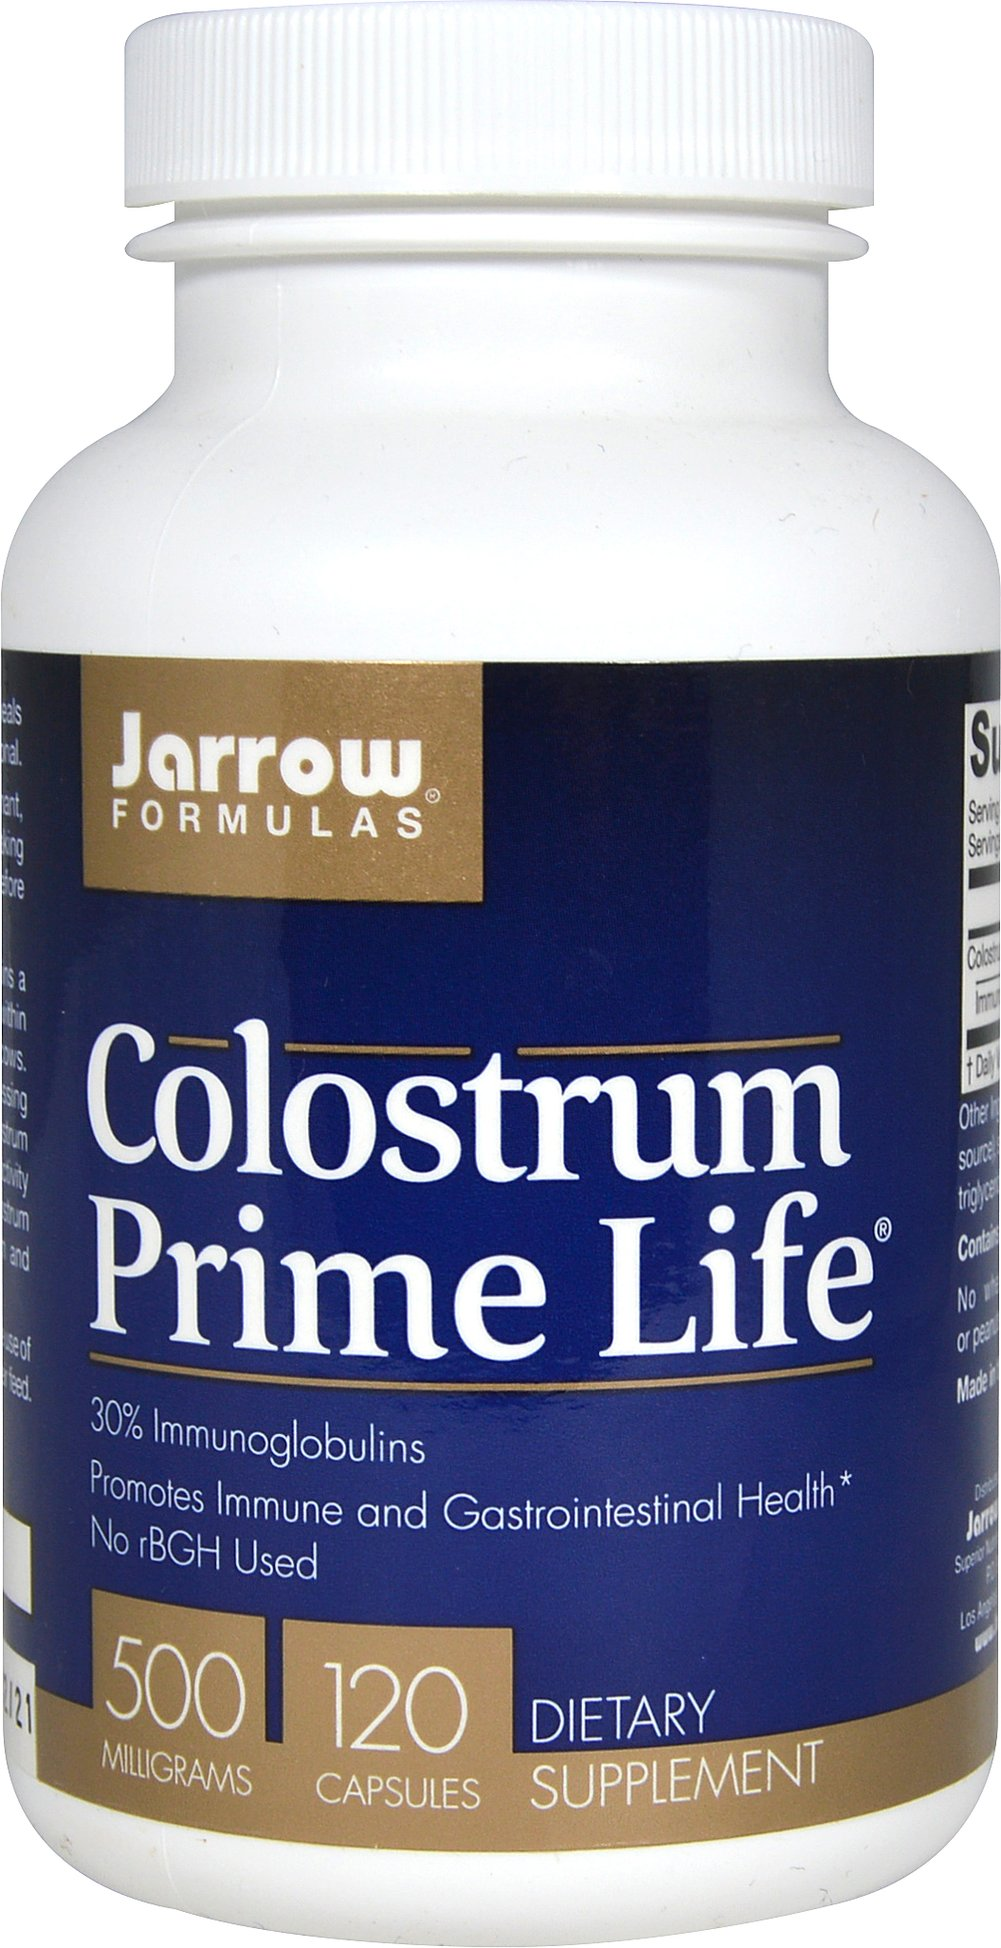 Colostrum Prime Life® 500 mg <p><strong>From the Manufacturer's Label:</strong></p><p>Jarrow Formulas® Colostrum Prime Life® contains a minimum of 35% immunoglobulins and is collected within 12 hours of calving from American, pasture-fed cows. The colostrum undergoes low-temperature processing along with testing to ensure that the different colostrum immunoglobulin fractions retain their biological activity and are not denatured.</p><p&gt